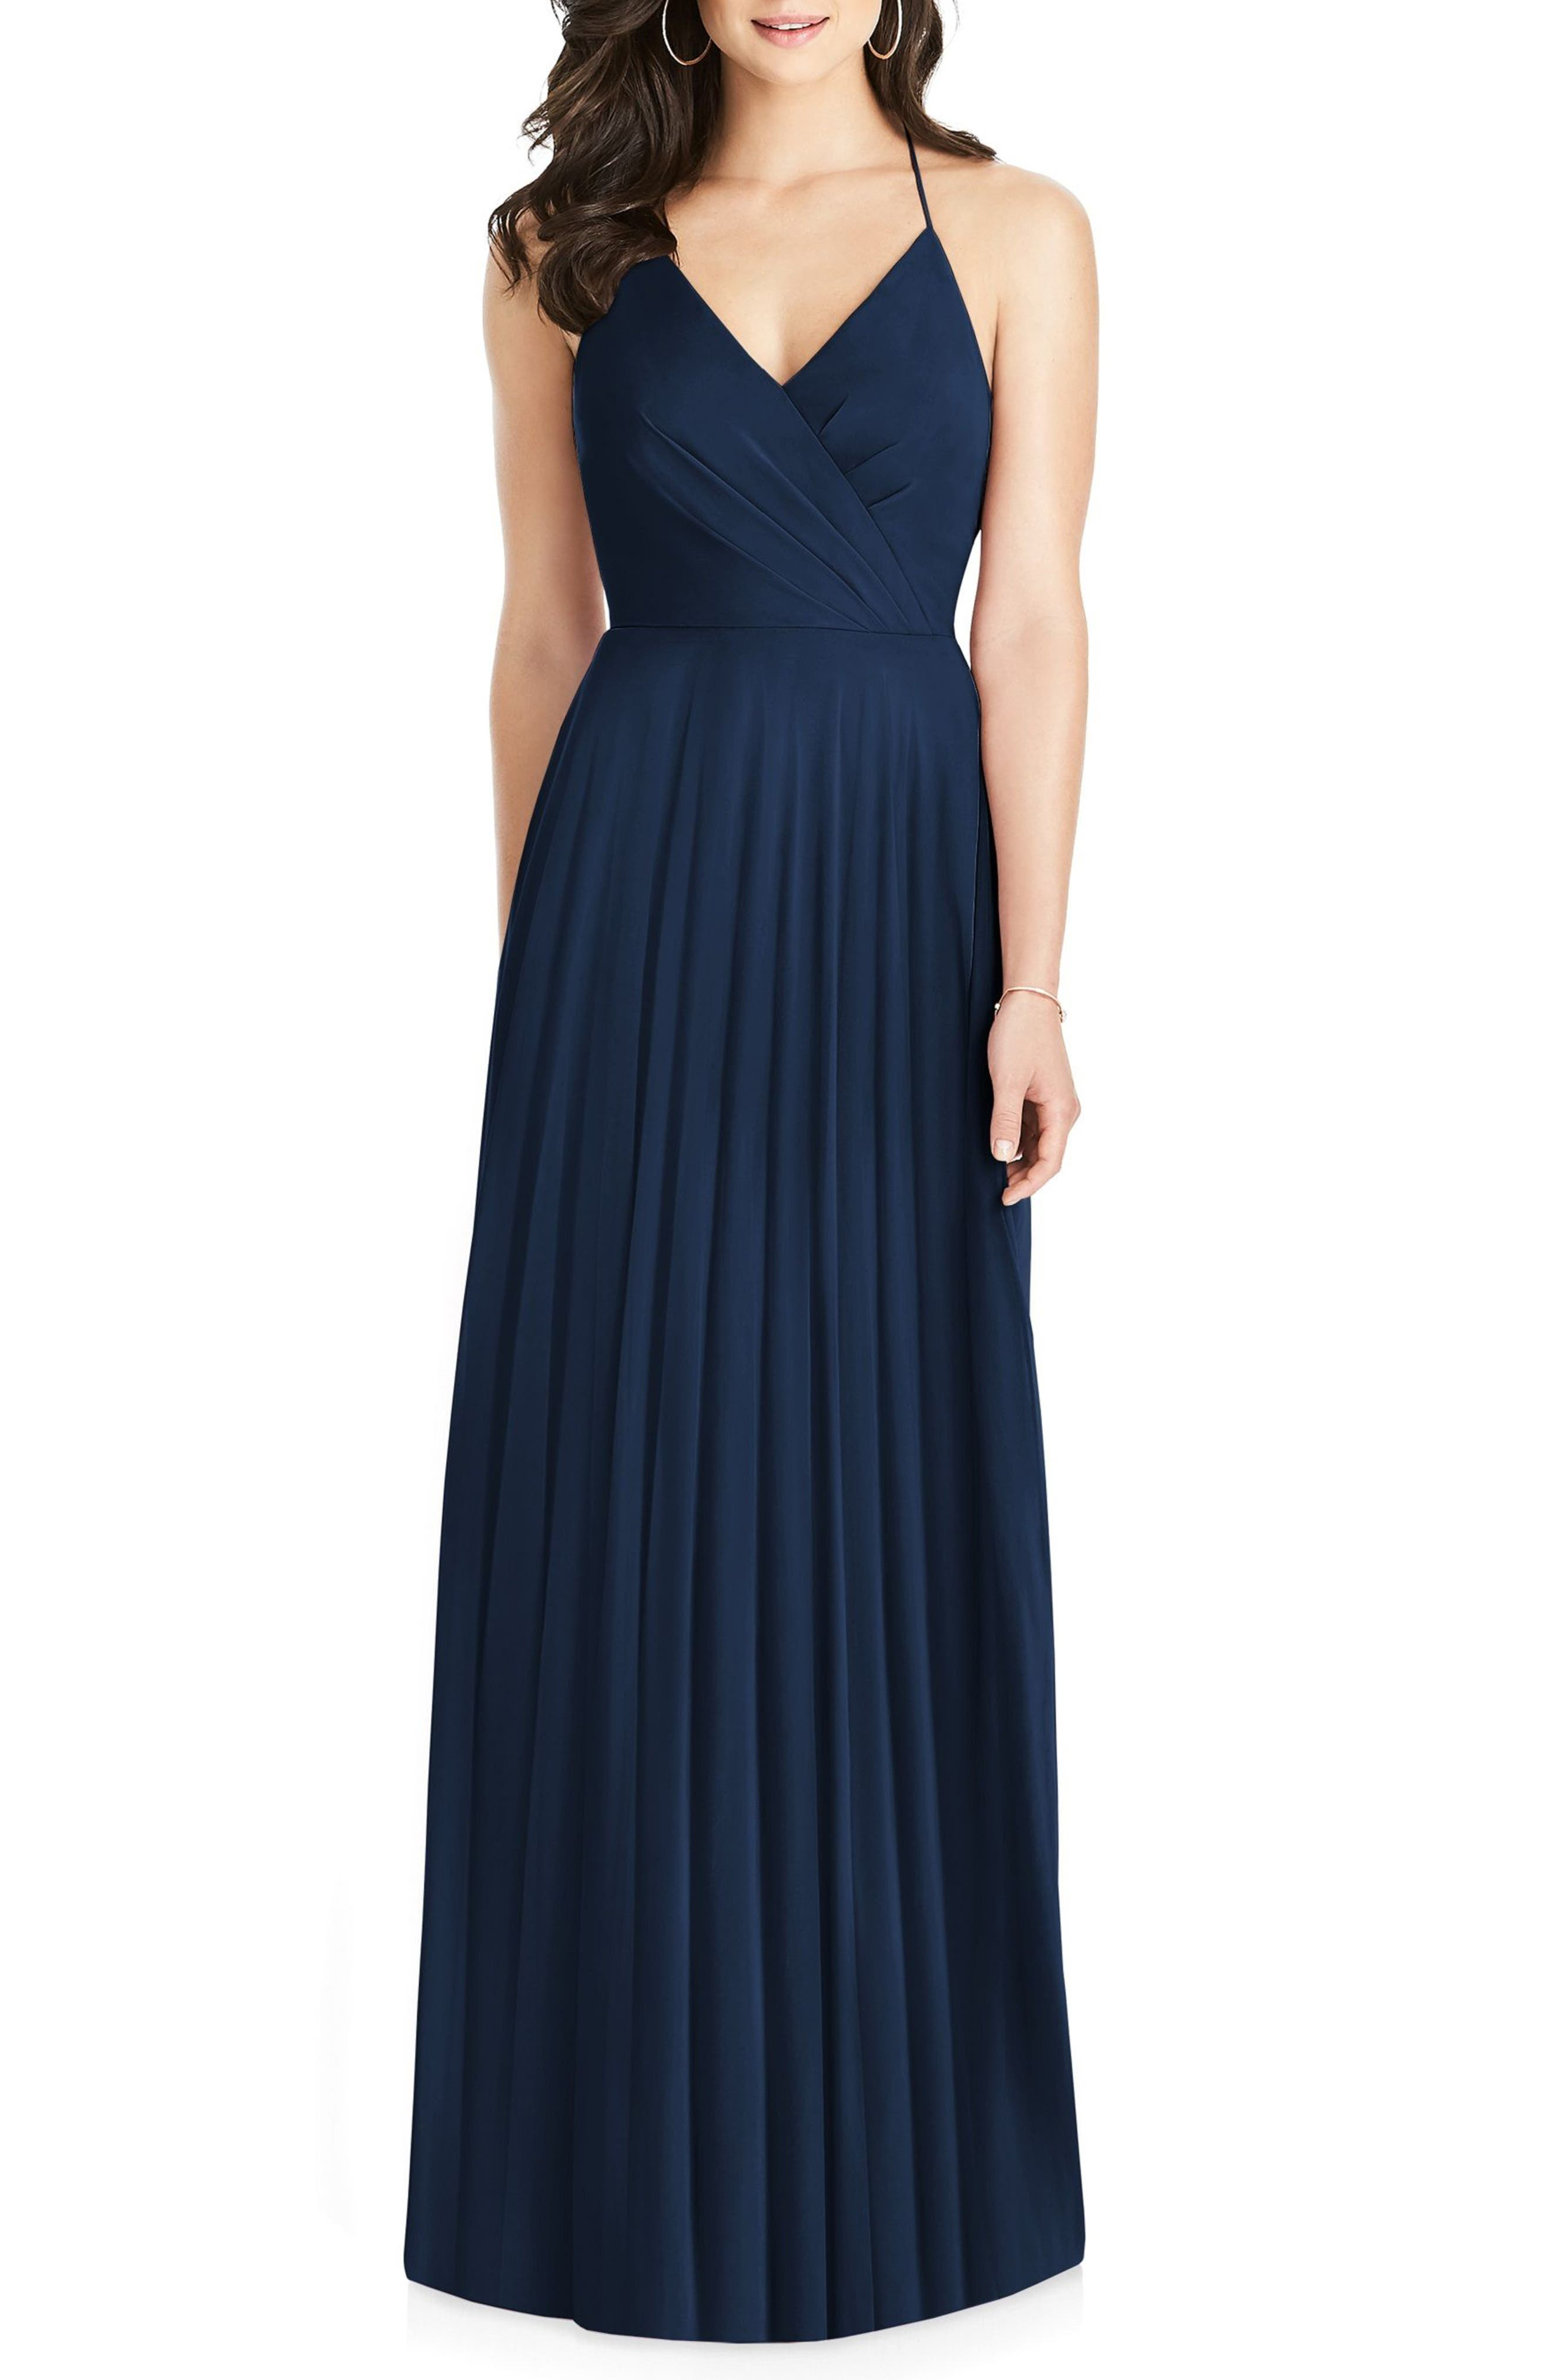 DESSY COLLECTION Ruffle Back Chiffon Gown, Main, color, MIDNIGHT